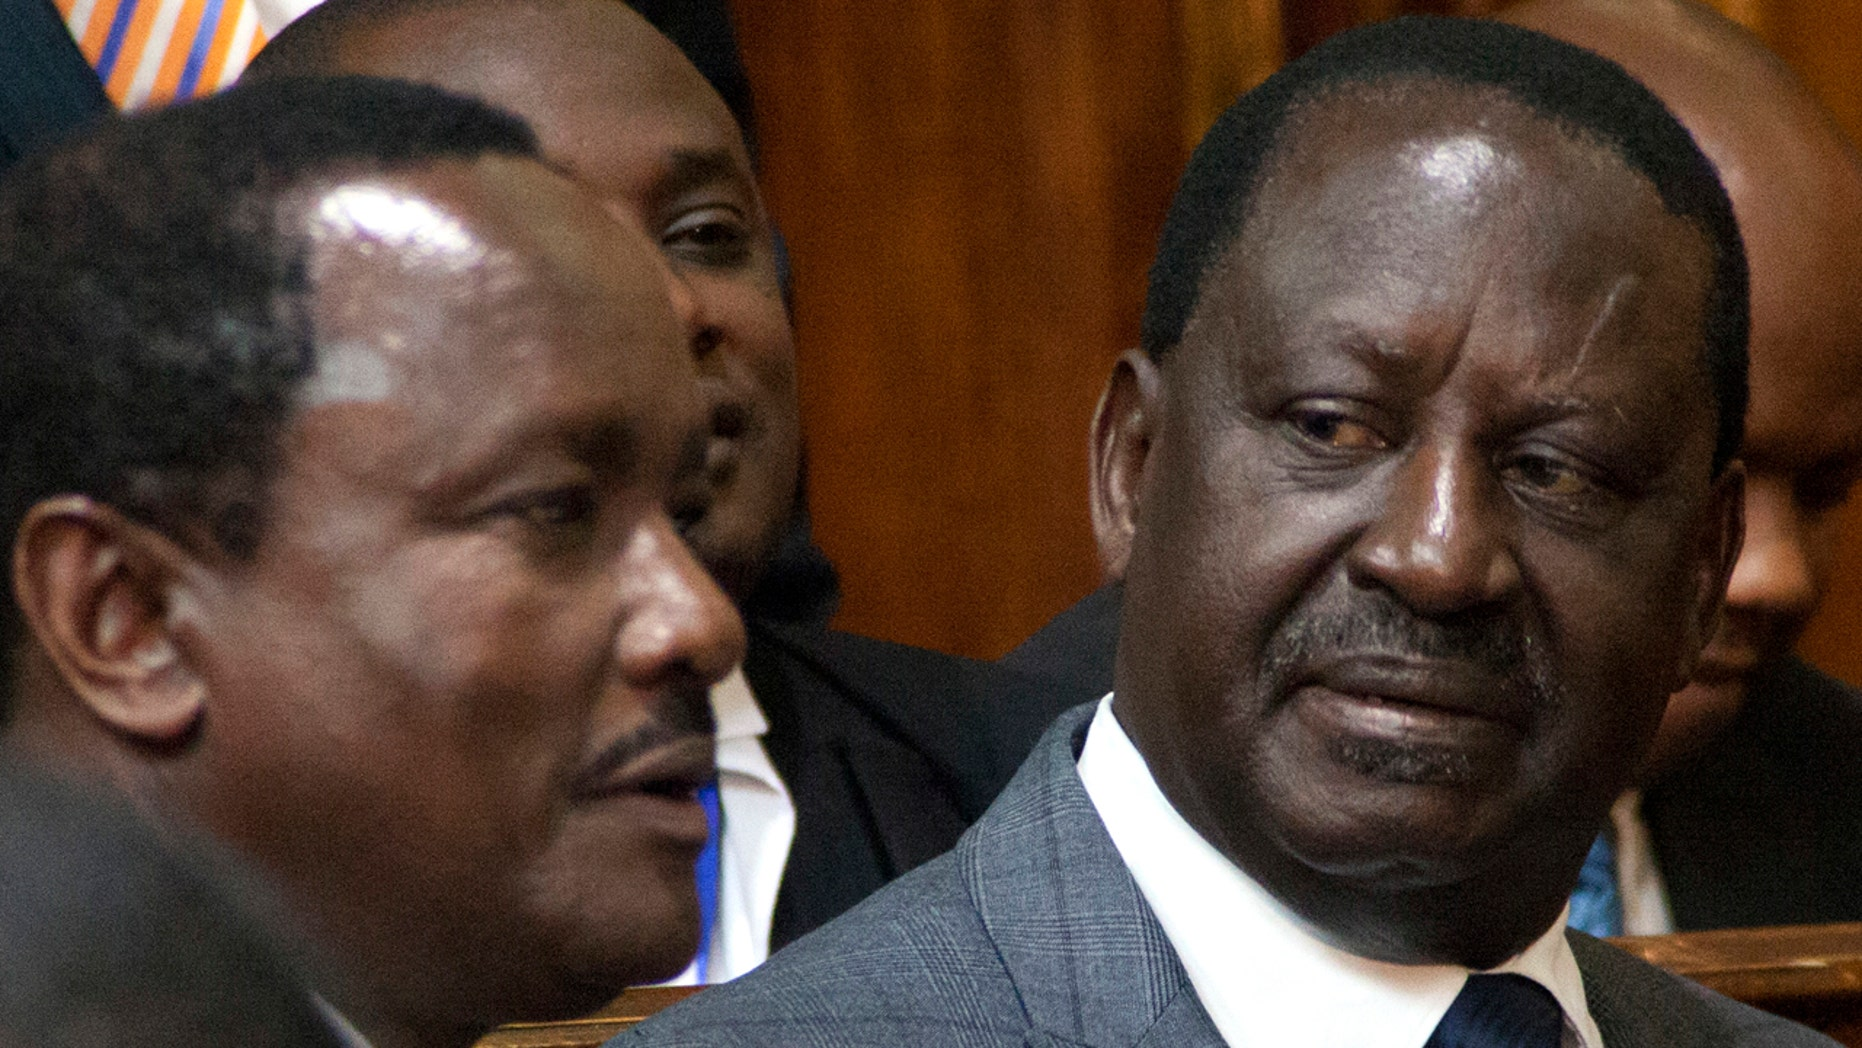 Opposition presidential candidate Raila Odinga, right, and his running mate, Kalonzo Musyoka sit, at the Kenya Supreme Court, in Nairobi, Friday, Sept. 1, 2017.